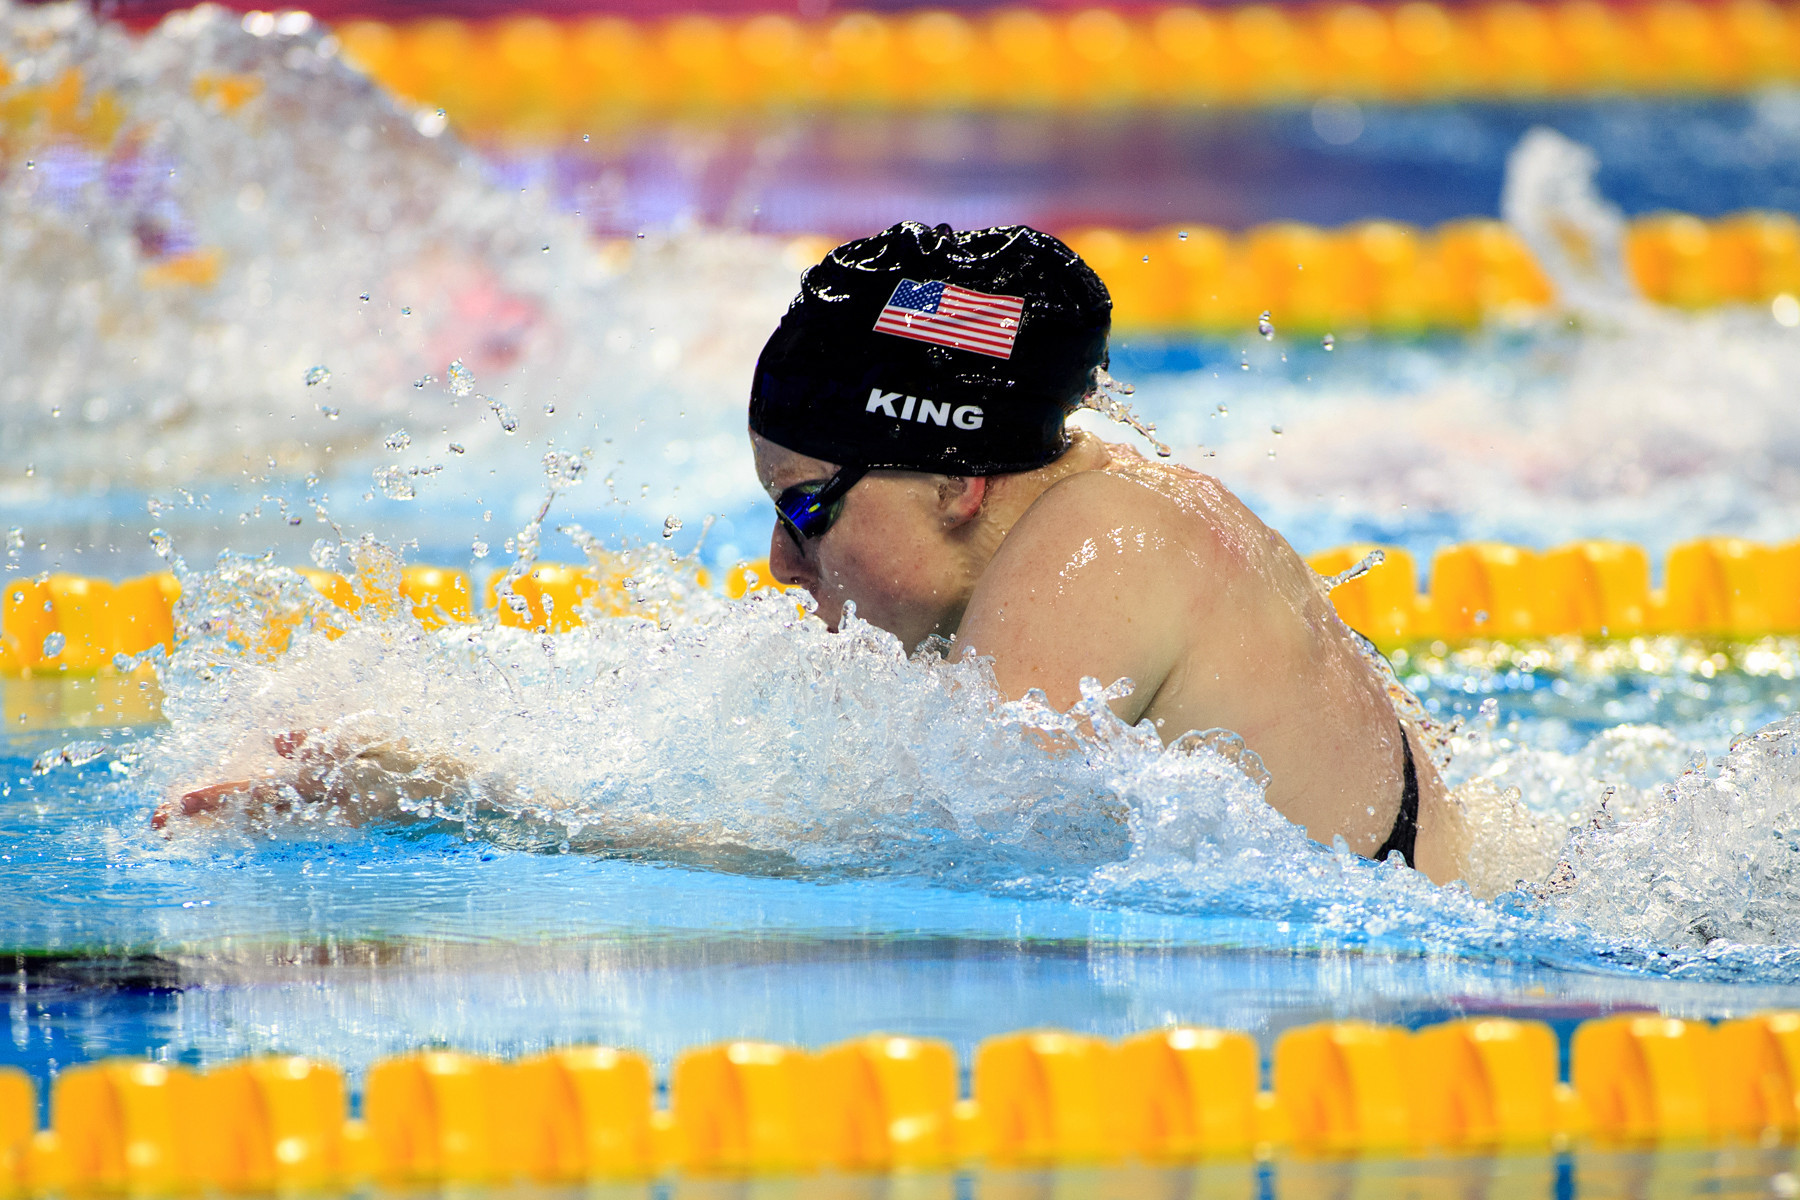 American Lily King won three titles at the International Swimming Federation Champions Swim Series in Indianapolis ©Getty Images